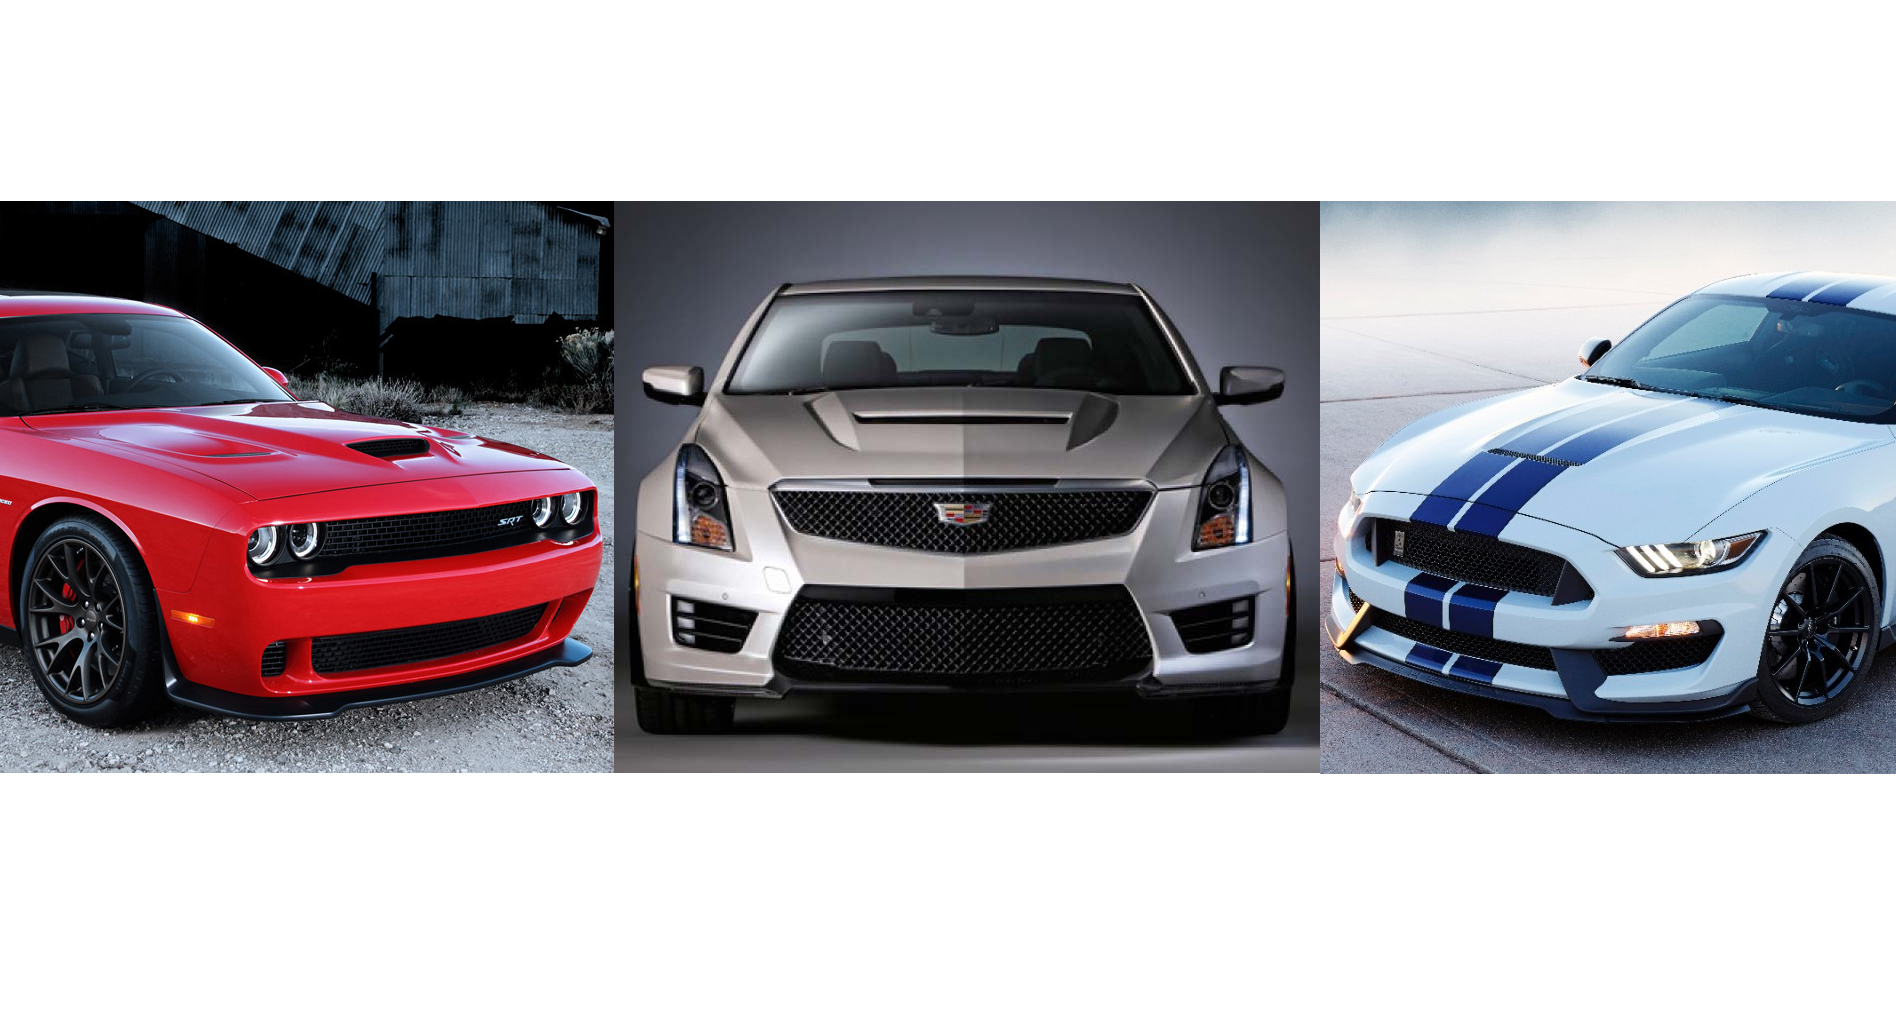 2015 mustang gt350 vs challenger hellcat vs cadillac ats. Black Bedroom Furniture Sets. Home Design Ideas